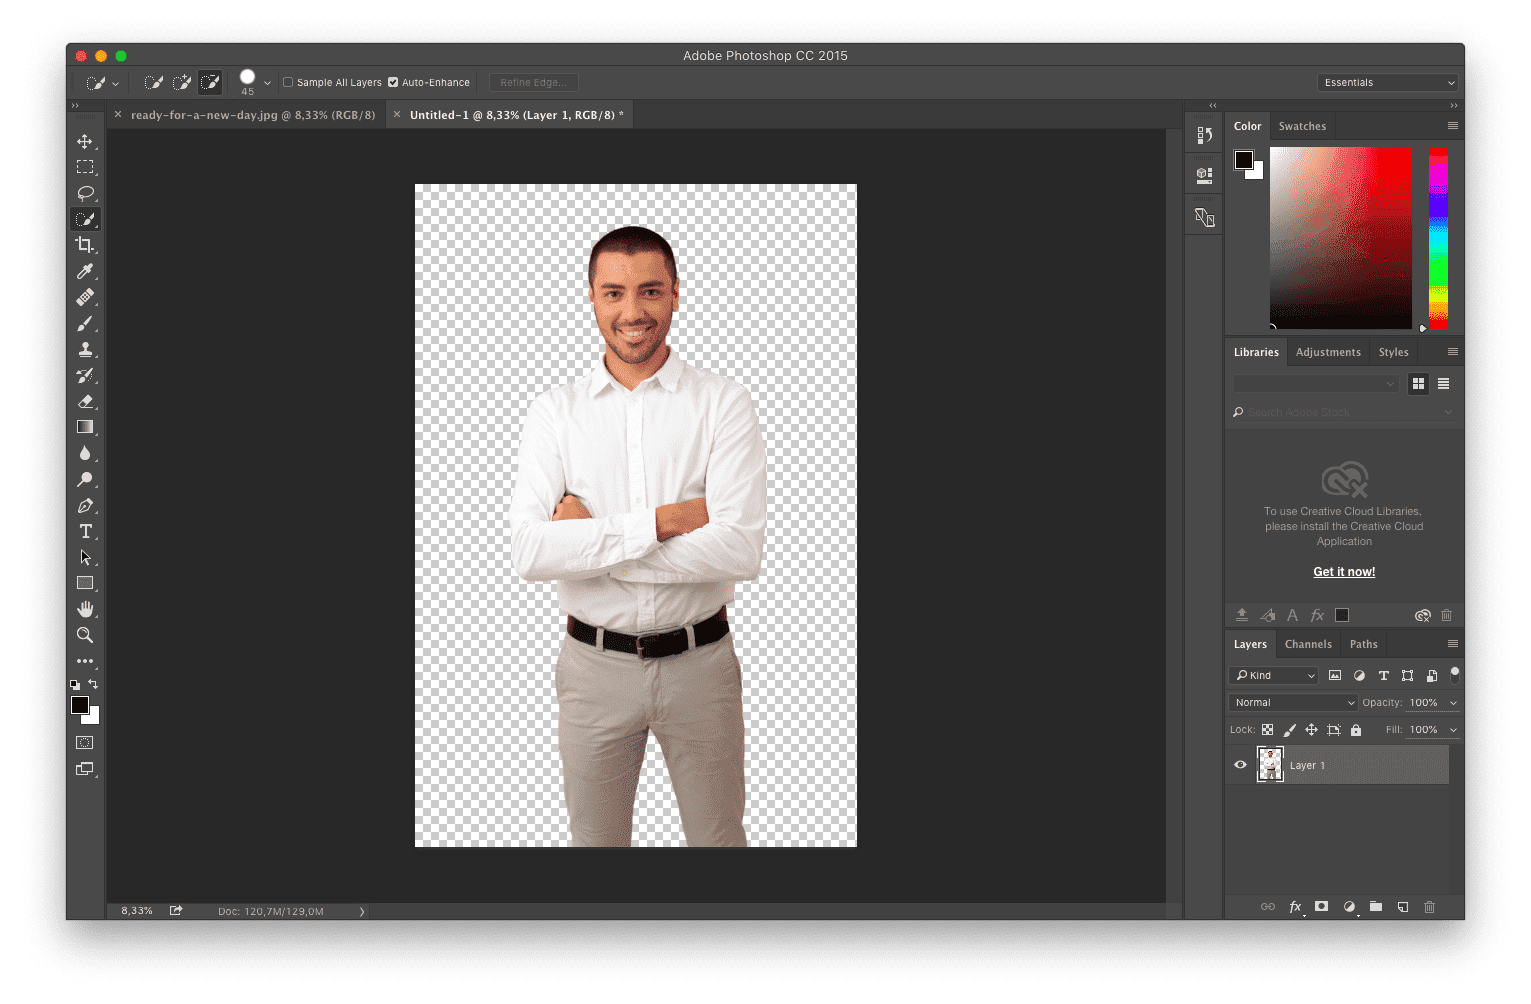 the image background become to be transparent